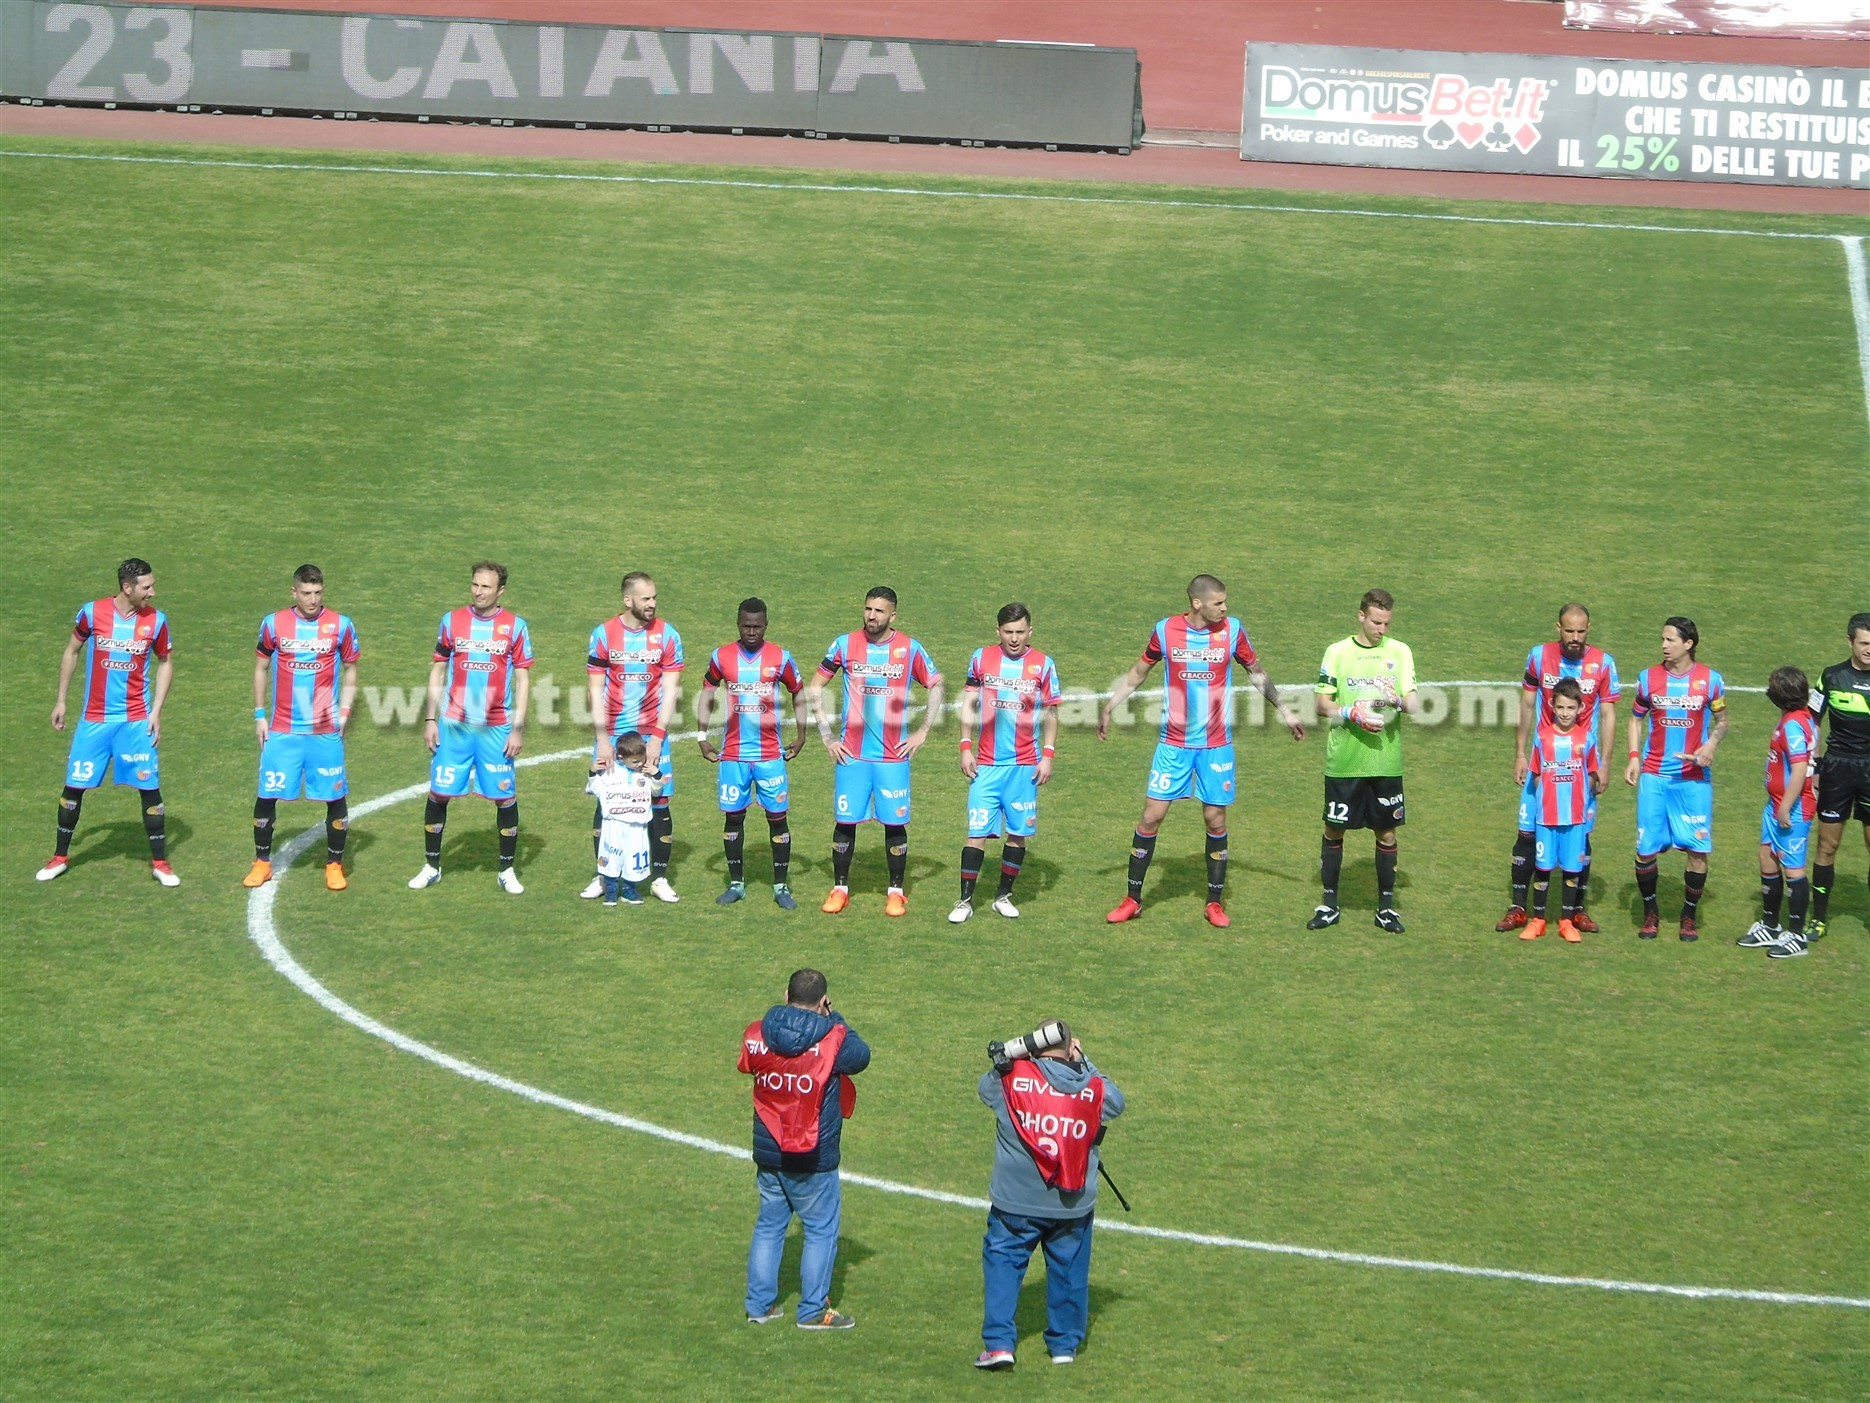 catania reggina - photo #49